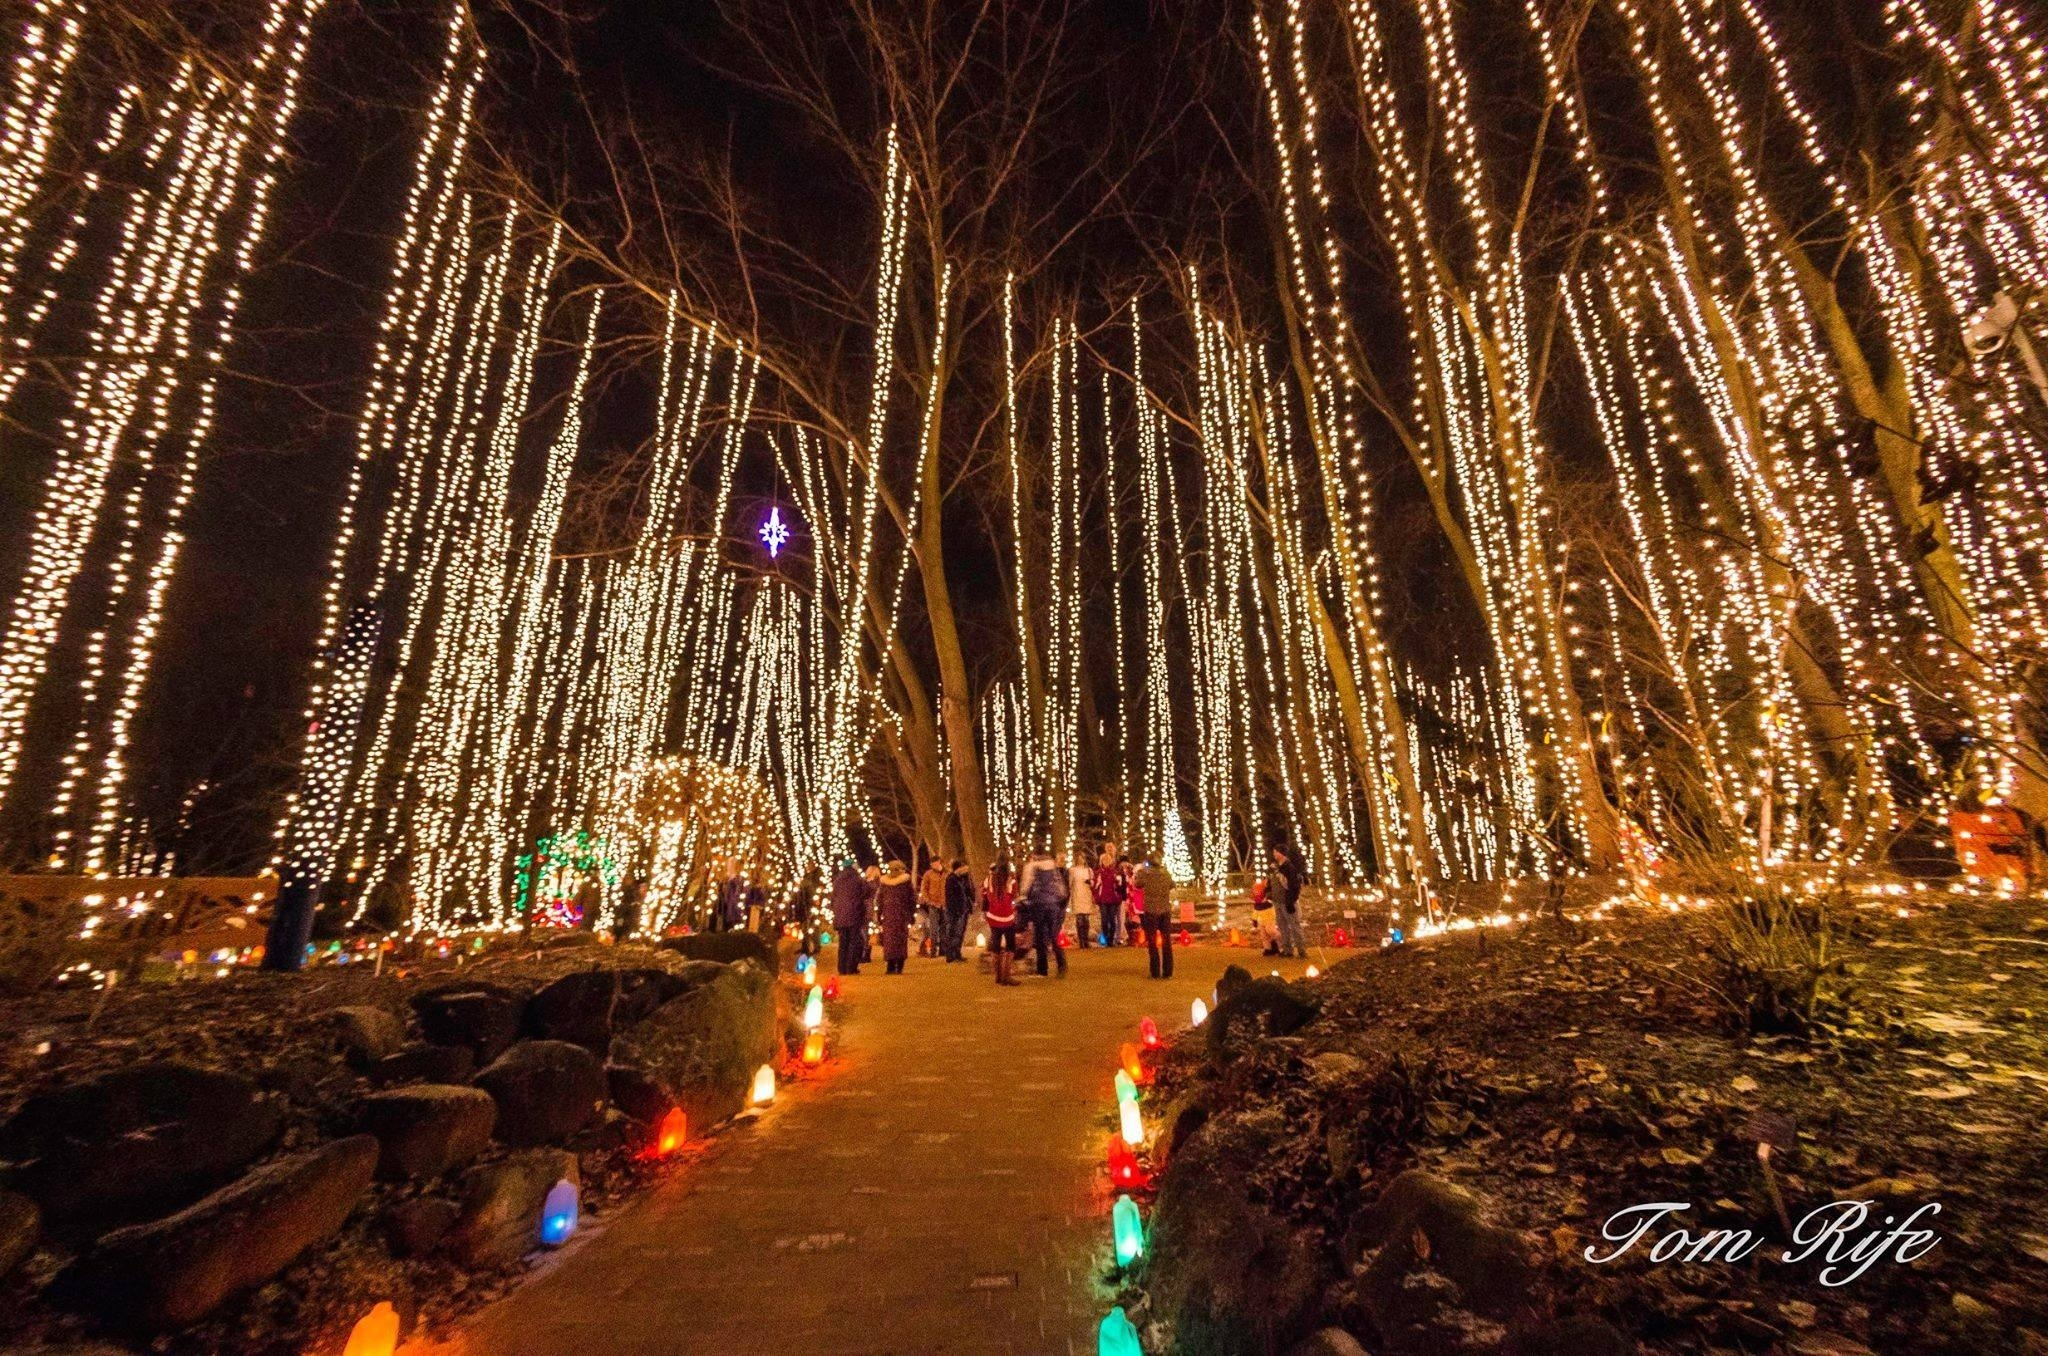 Holiday Light Show - Rotary Botanical Gardens - 1455 Palmer Drive pertaining to Rotary Garden Light Show Janesville Wi